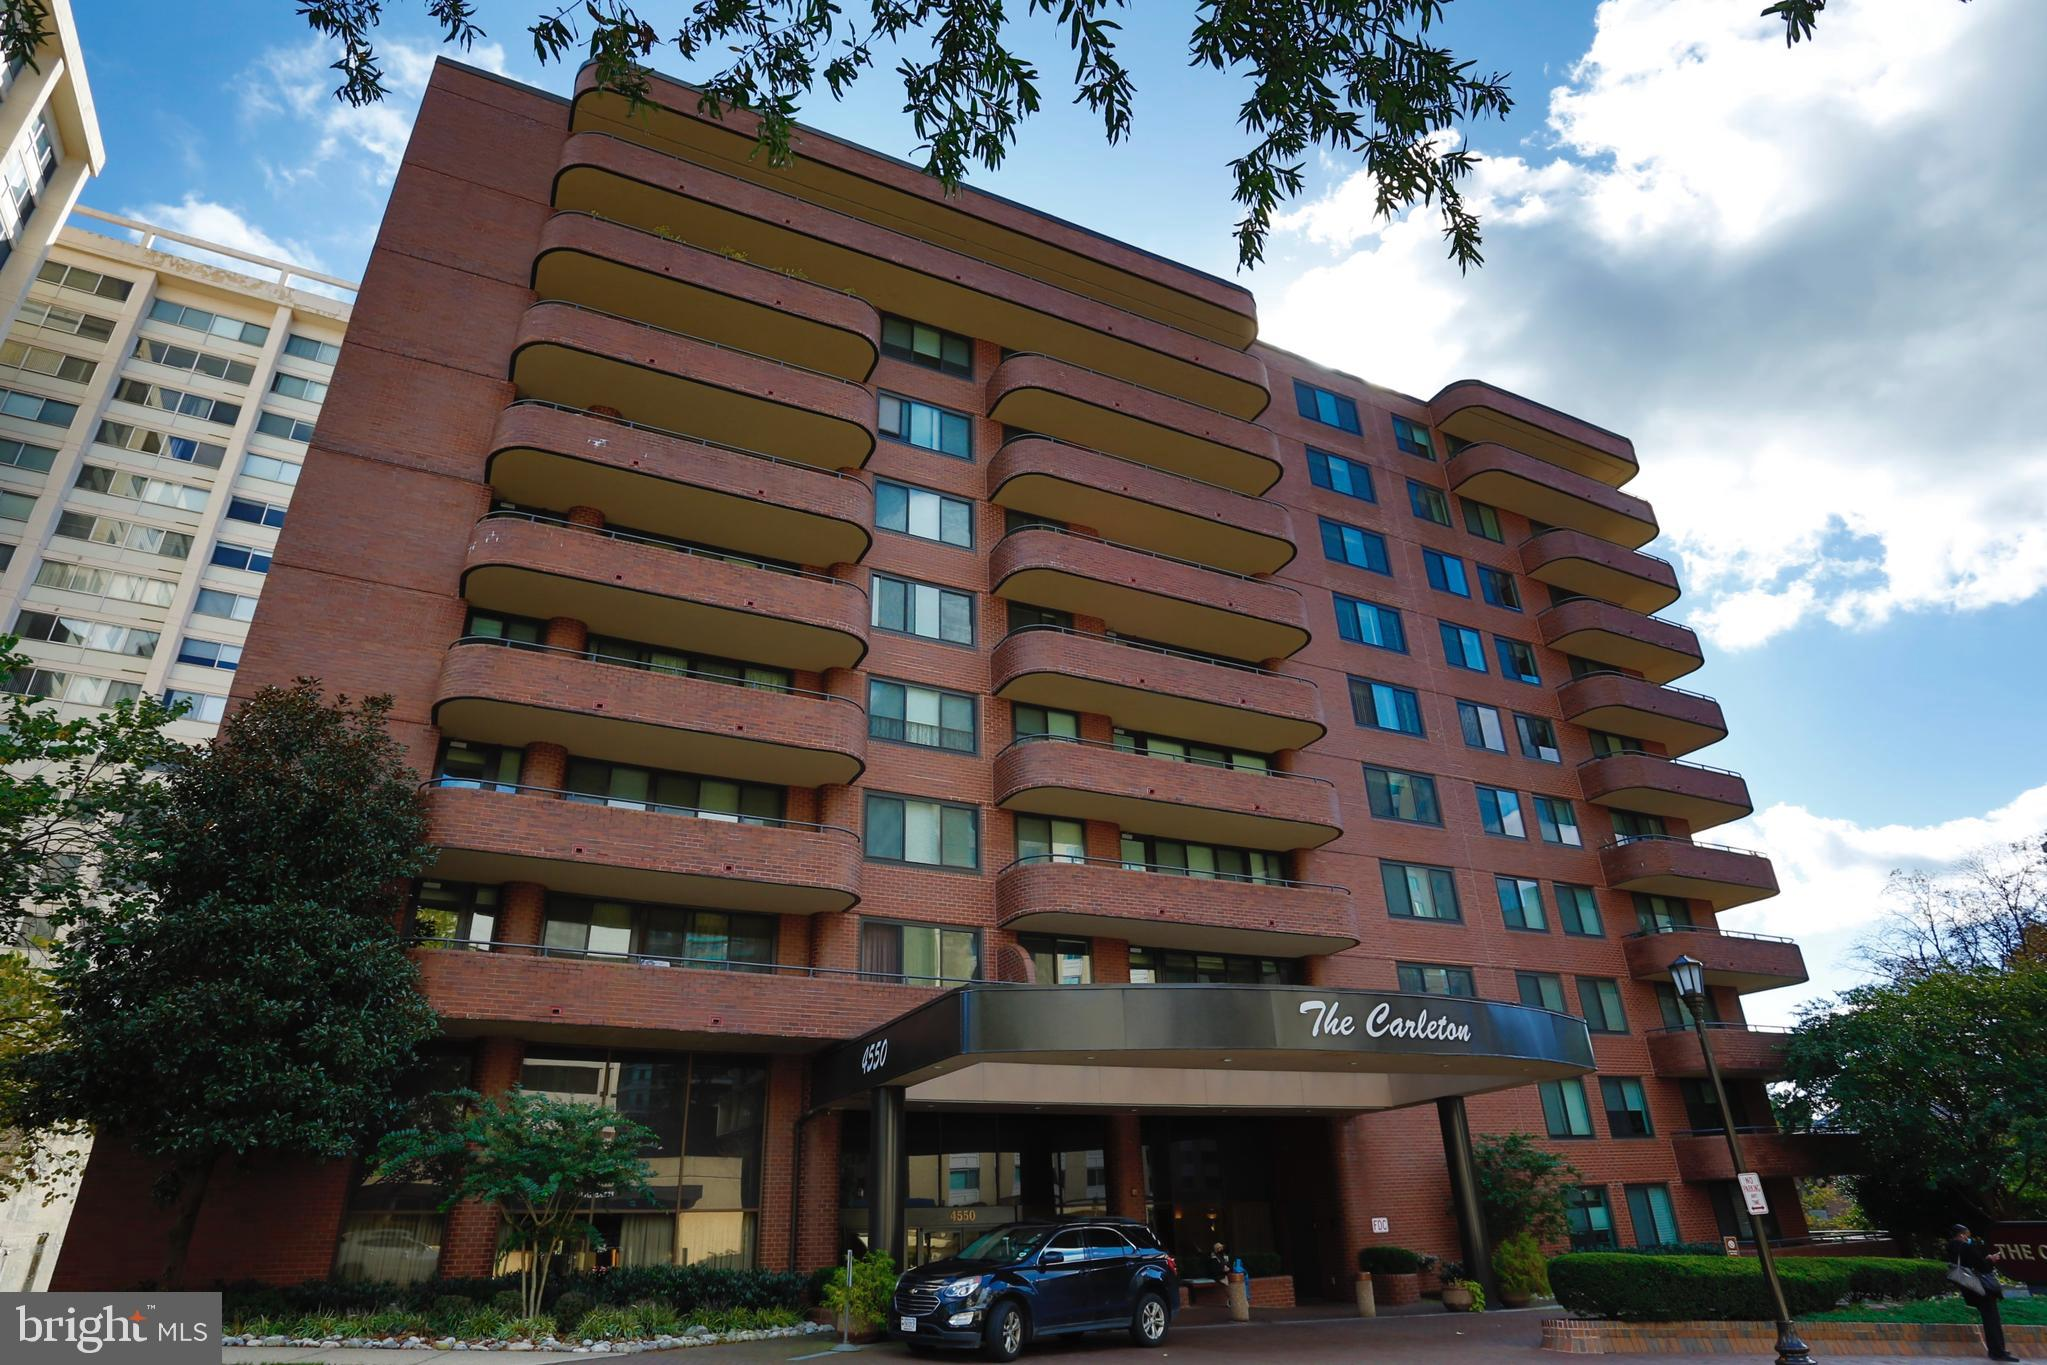 4550 N PARK AVENUE, CHEVY CHASE, Maryland 20815, 3 Bedrooms Bedrooms, ,3 BathroomsBathrooms,Condominium,For Sale,4550 N PARK AVENUE,MDMC753588